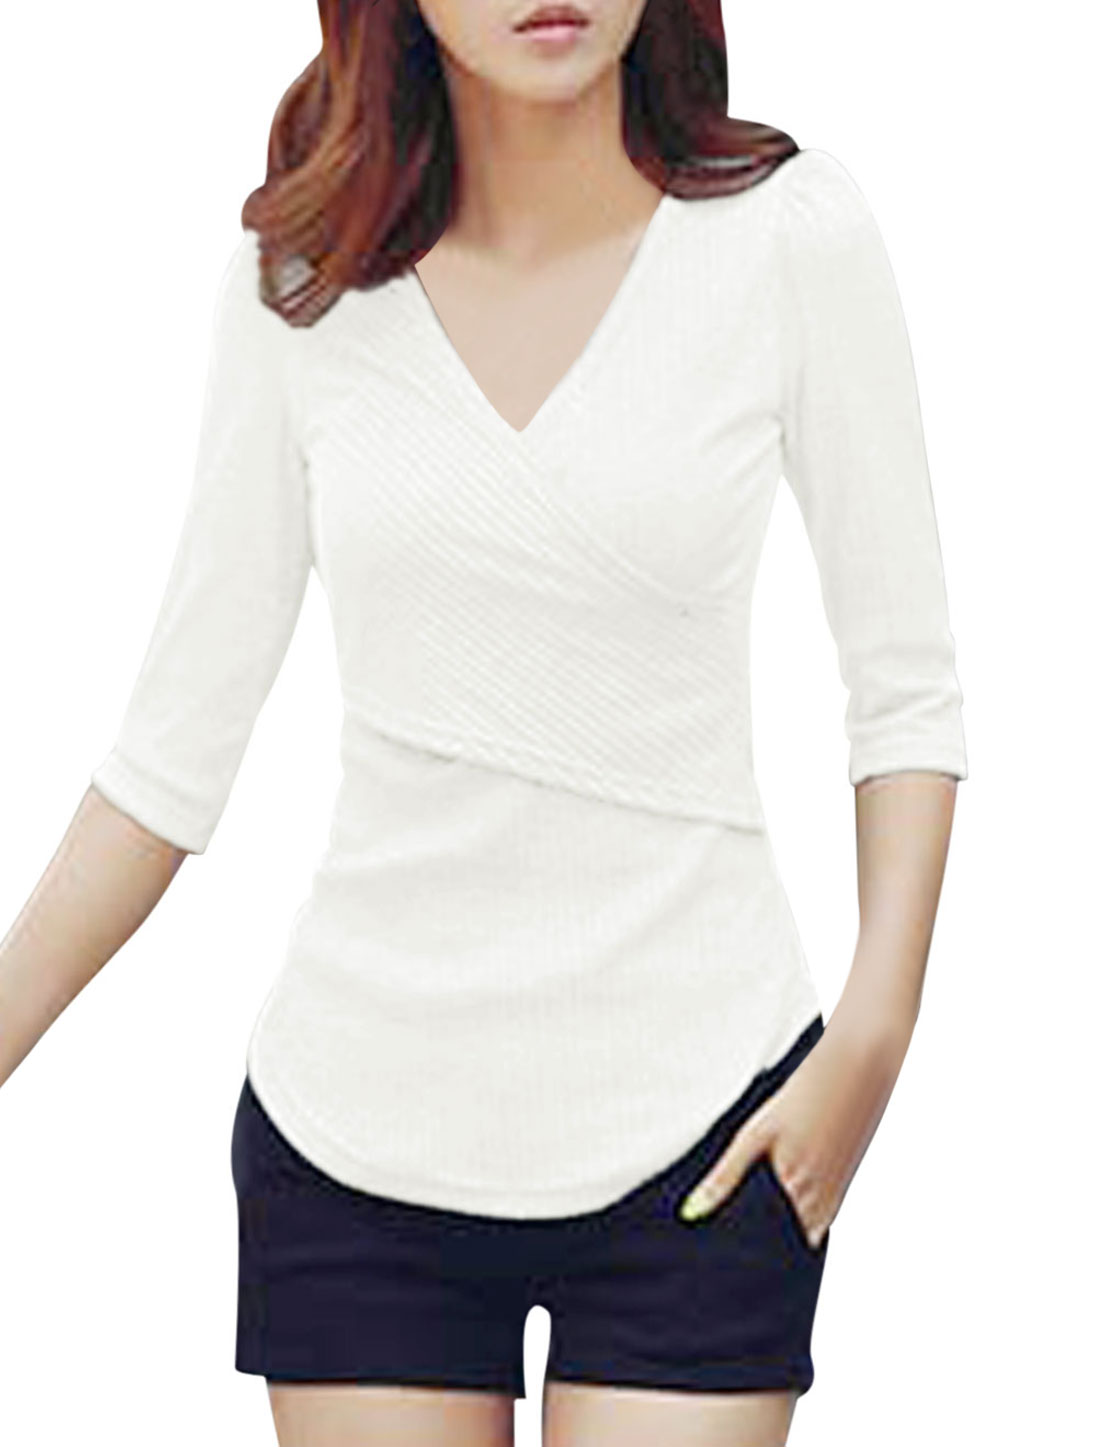 Ladies Form-fitting Sexy Crossover V-neck Shirt White M